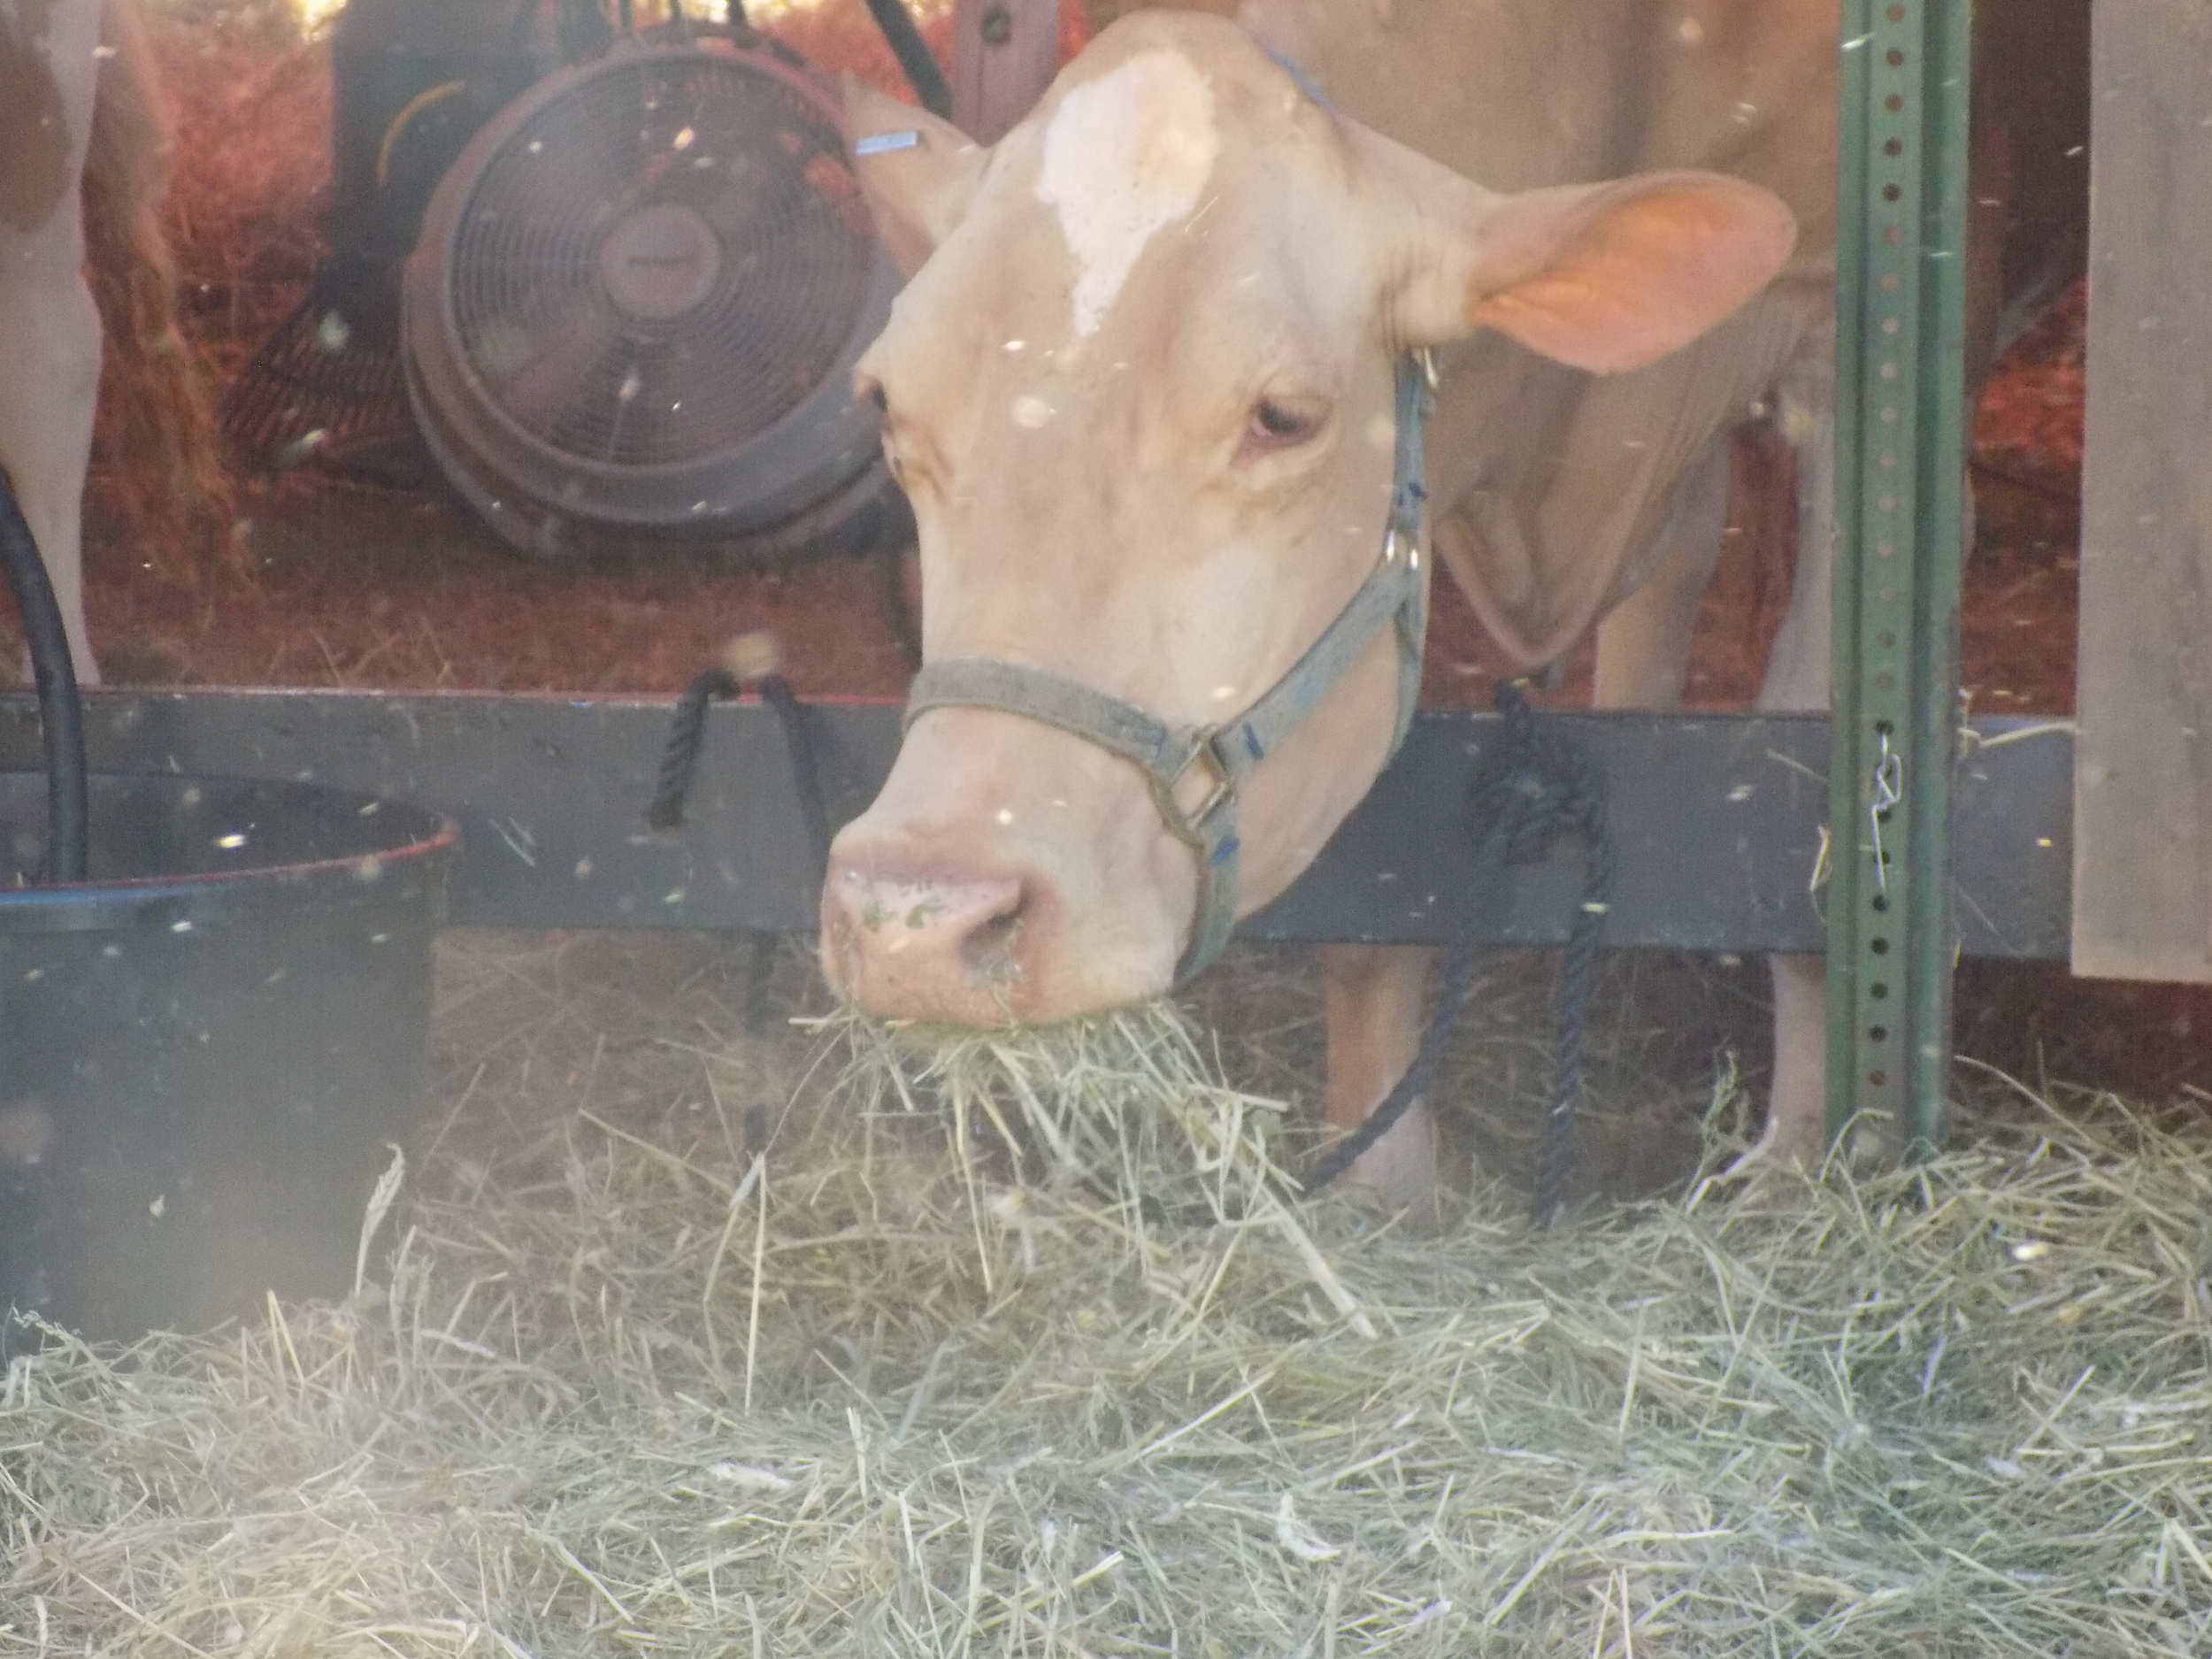 Just a cow munching on some hay